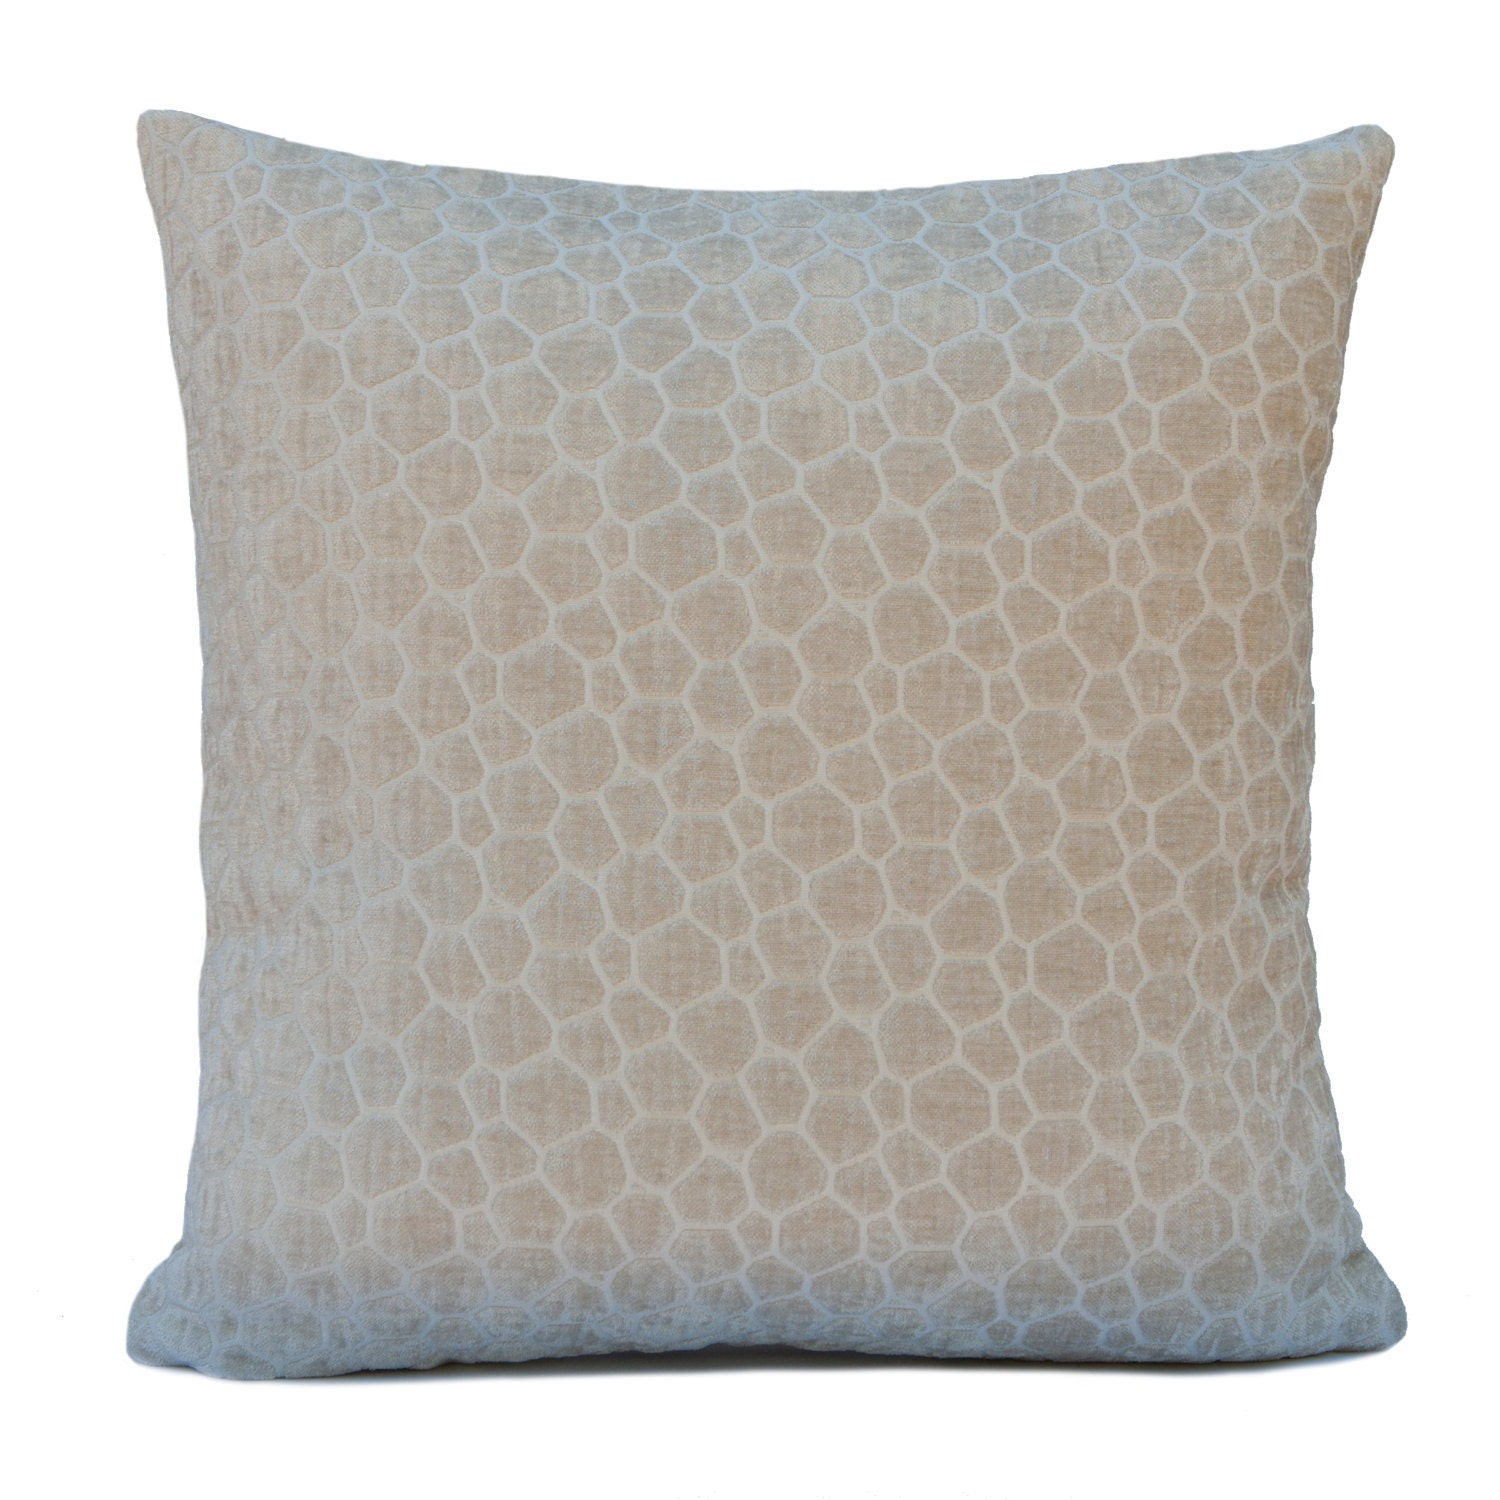 Decorative Pillow Ivory : Off White Ivory Pillow Throw Pillow Cover Decorative Pillow